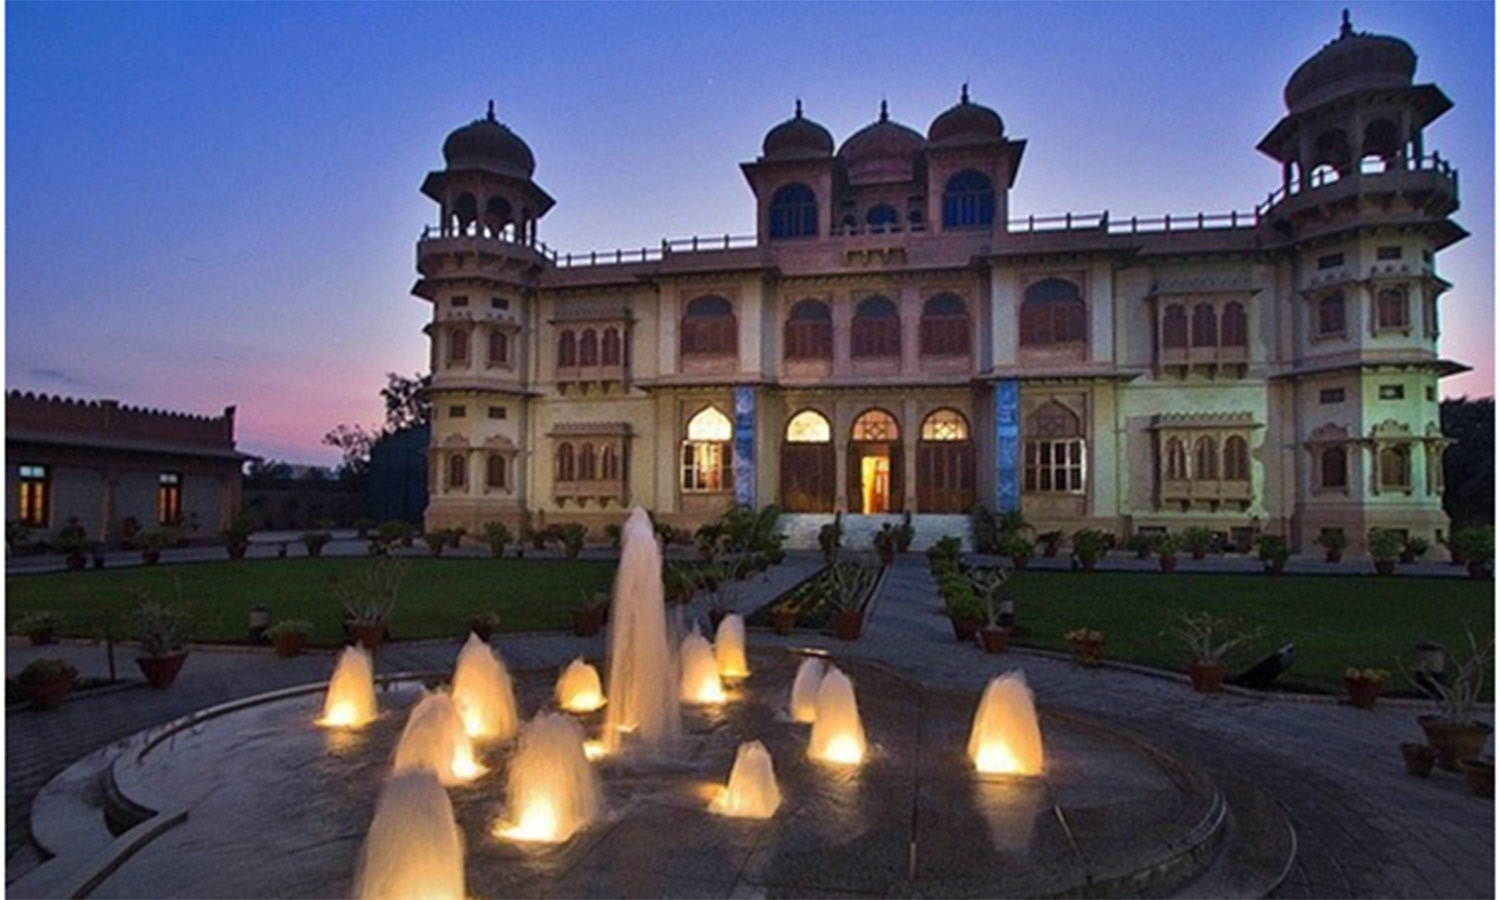 The Mohatta Palace today. It was locked up and ignored after Ms. Jinnah's demise in 1967. In 1995 it was restorted by the Sindh govornment and turned into a museum.